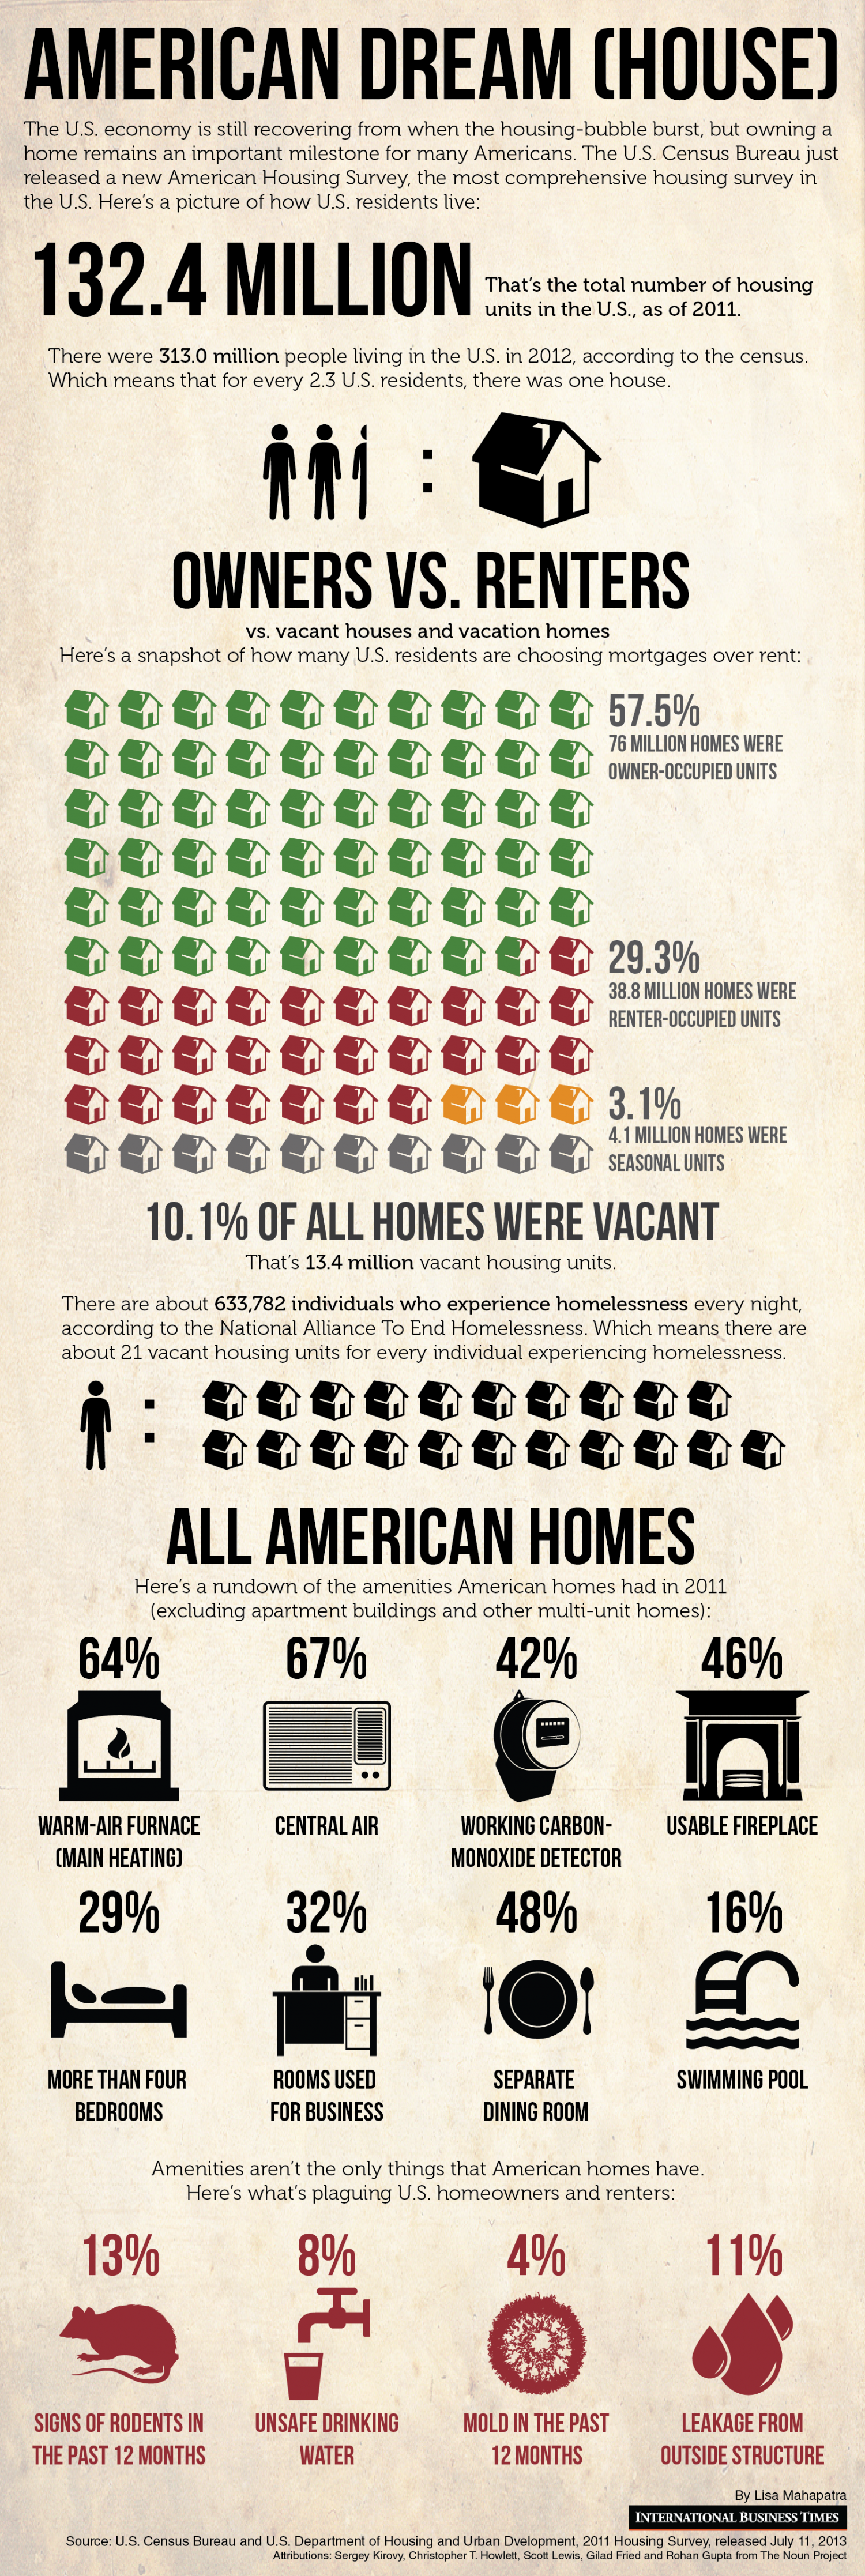 US Housing: The State Of The American Dream Infographic